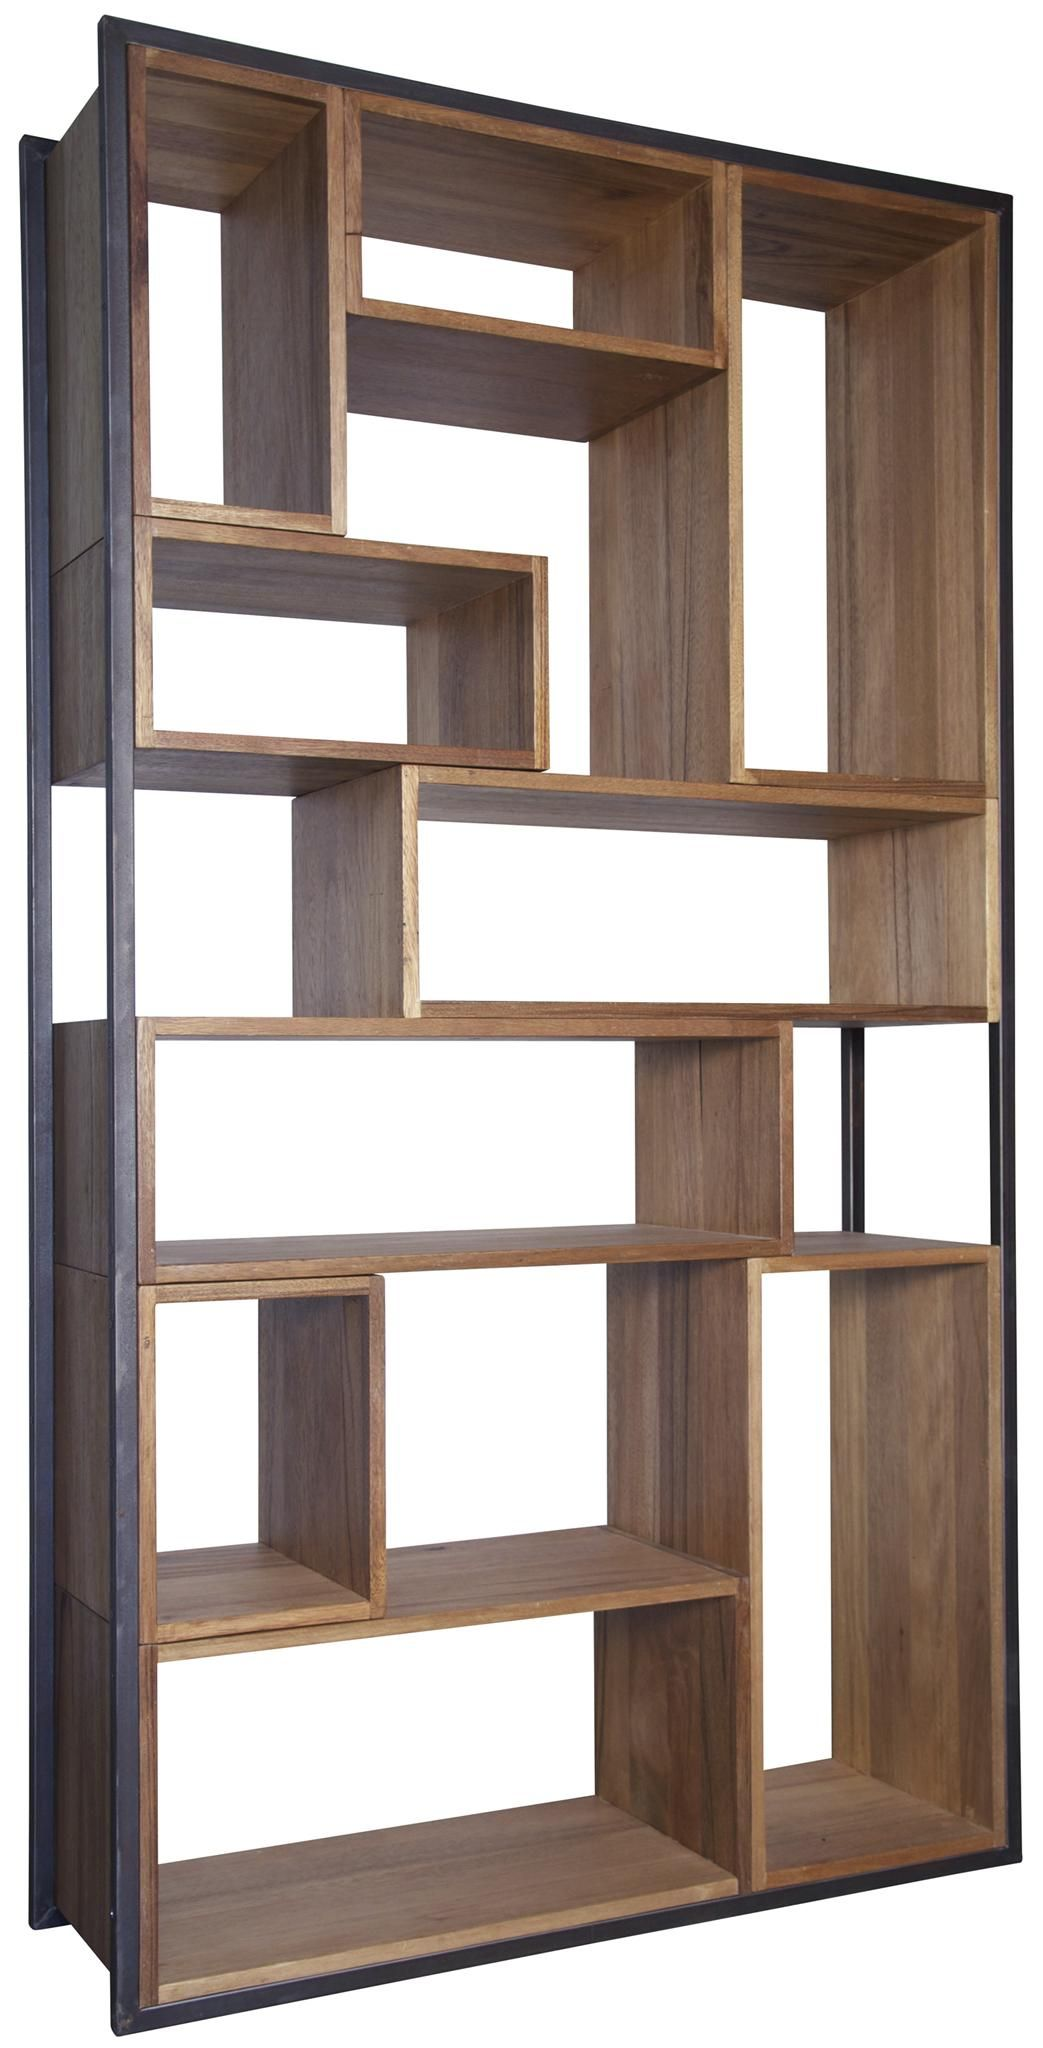 Very Impressive portraiture of Design Home Bookcase Furniture Rectangle Shape Three Tiers Shelves  with #866845 color and 1043x2048 pixels